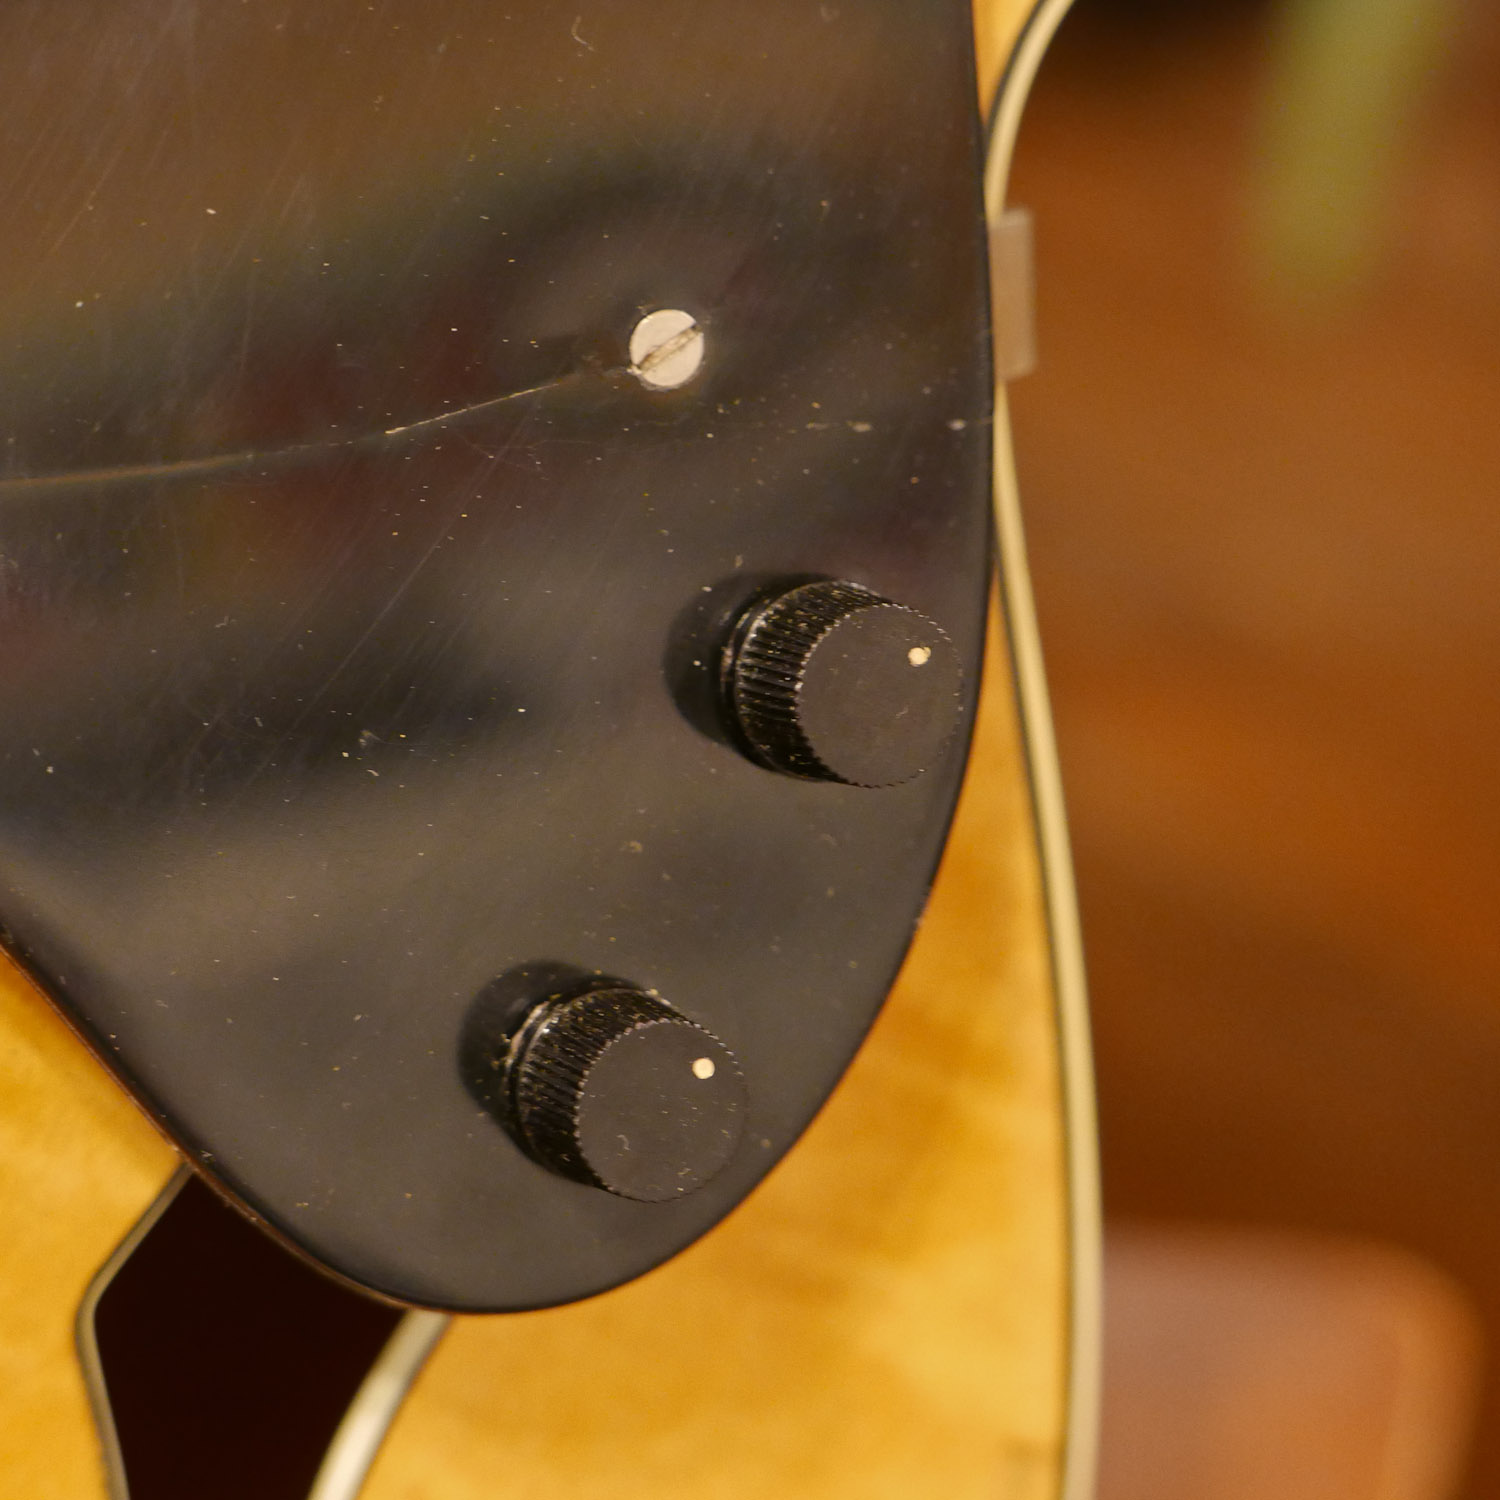 Jake Wildwood 1950s National New Yorker Archtop Electric Mandocello Simplicity Wiring Harness I Used Mini Pots And Knobs From An Original 60s Japanese Add On Guitar Pickup They Fit In Just Right This